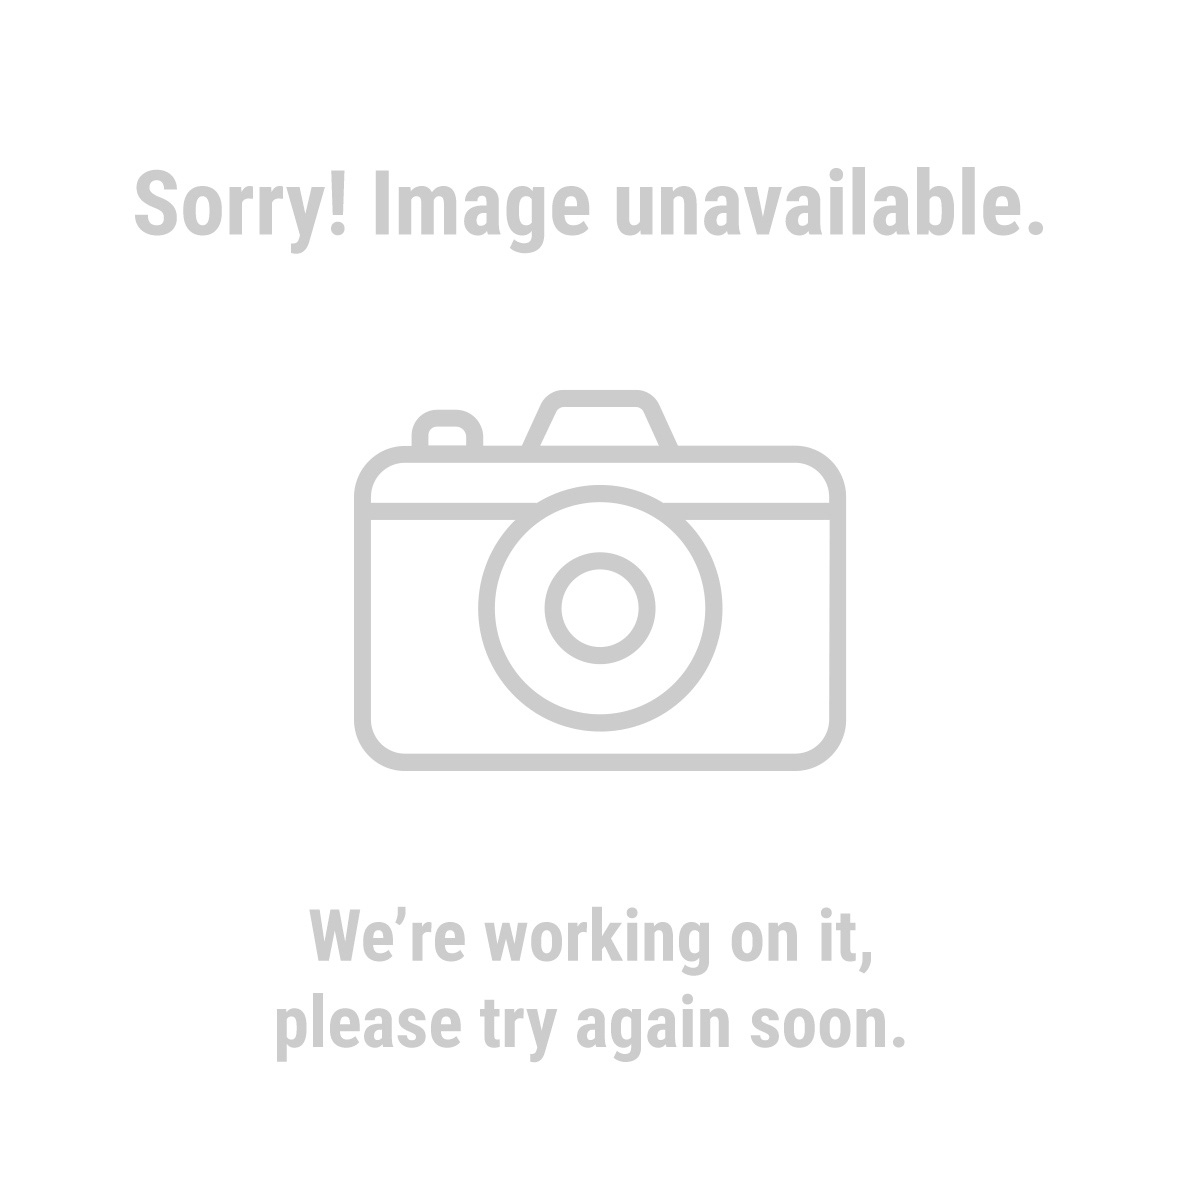 96455 Power In, Power Out 3000 Lb. Capacity 12 Volt Electric Winch